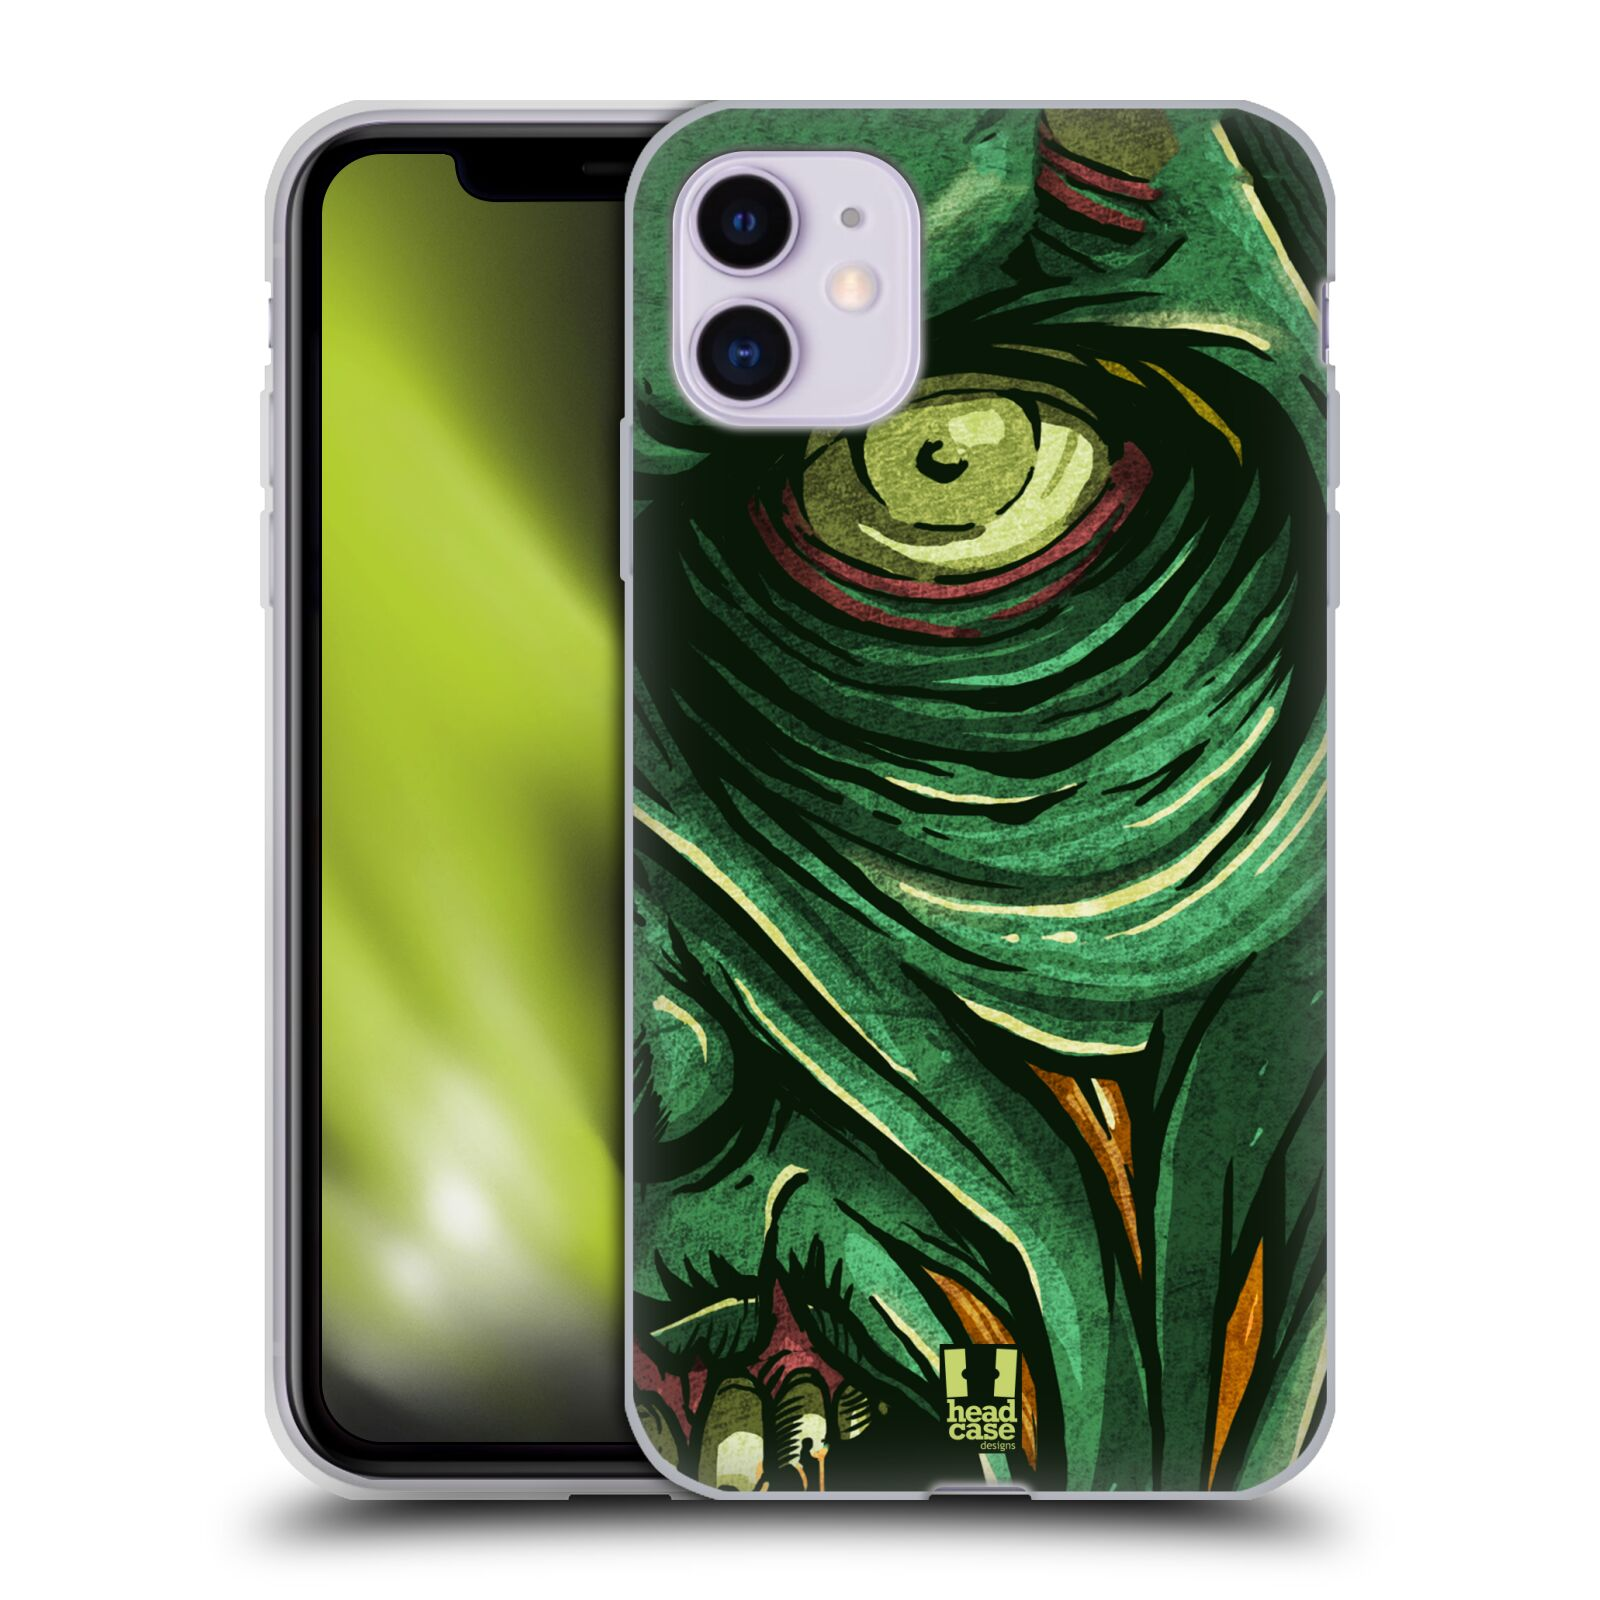 iphone 7 obal 360 | Silikonové pouzdro na mobil Apple iPhone 11 - Head Case - ZOMBIE TVÁŘ